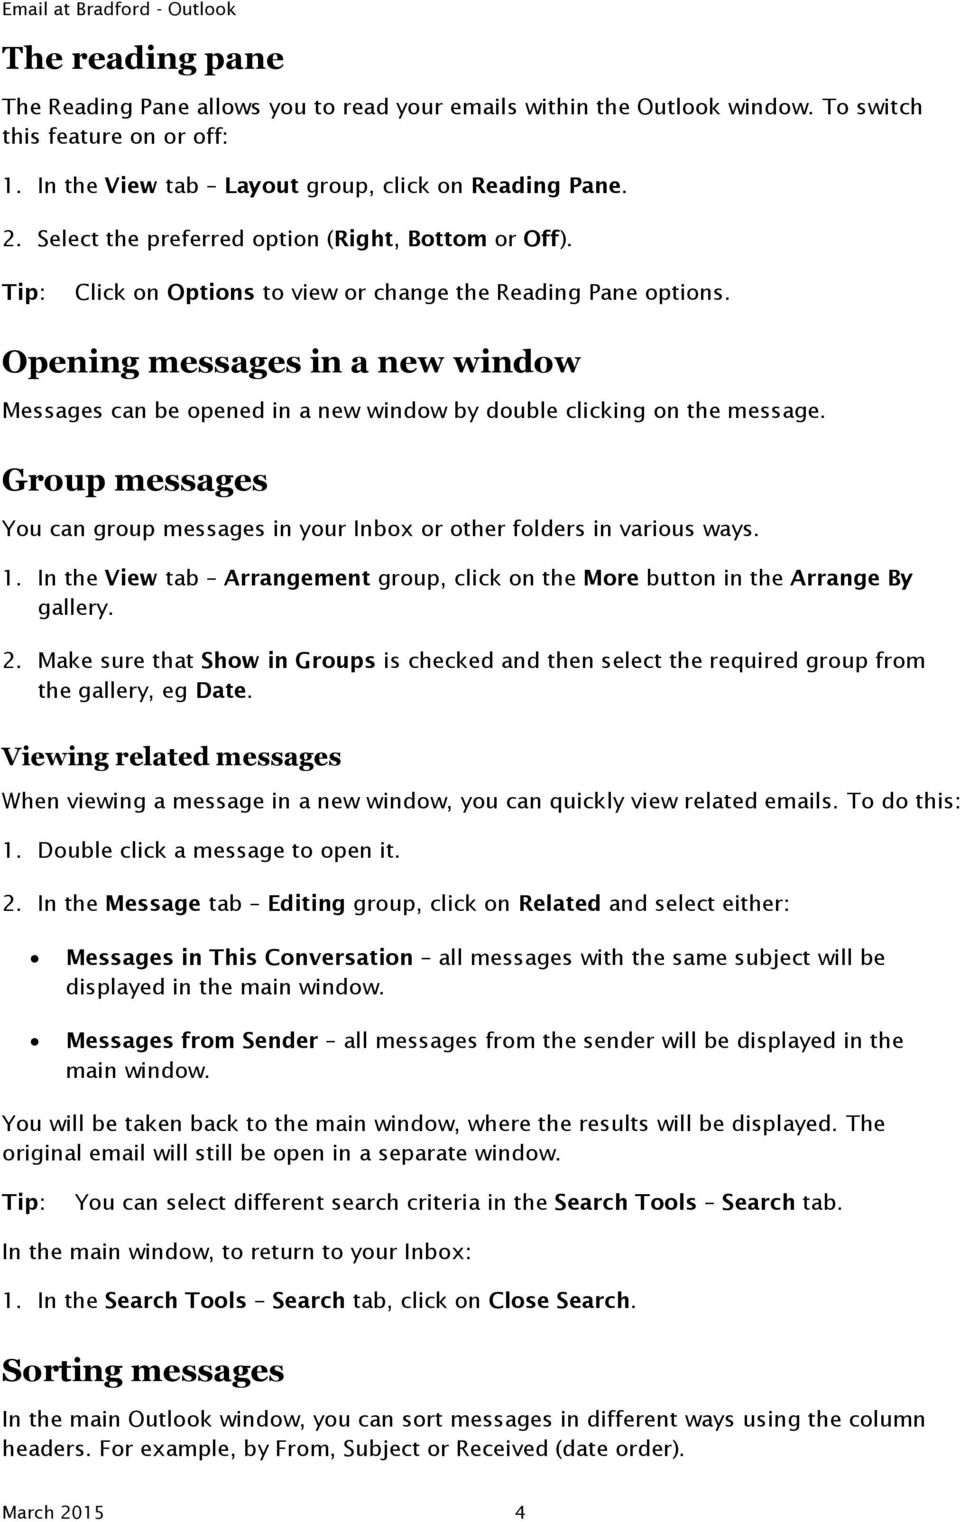 Opening messages in a new window Messages can be opened in a new window by double clicking on the message. Group messages You can group messages in your Inbox or other folders in various ways. 1.